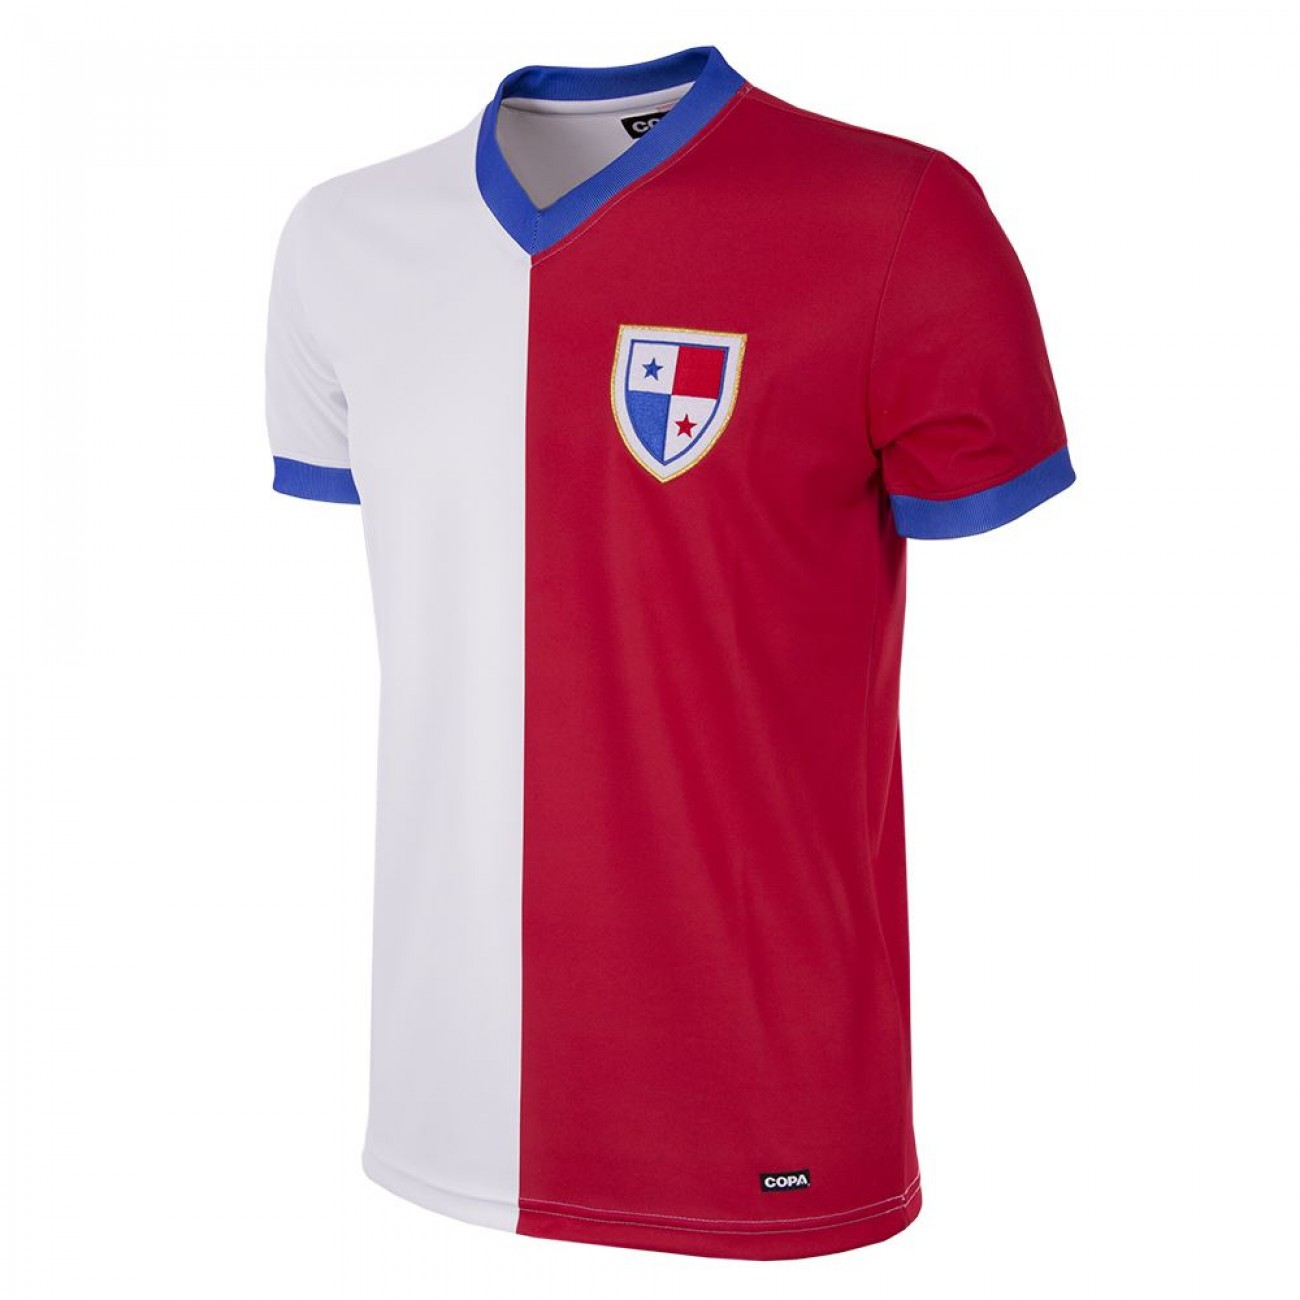 8b1ce417ef6 Retro World Cup Football Shirts – EDGE Engineering and Consulting ...